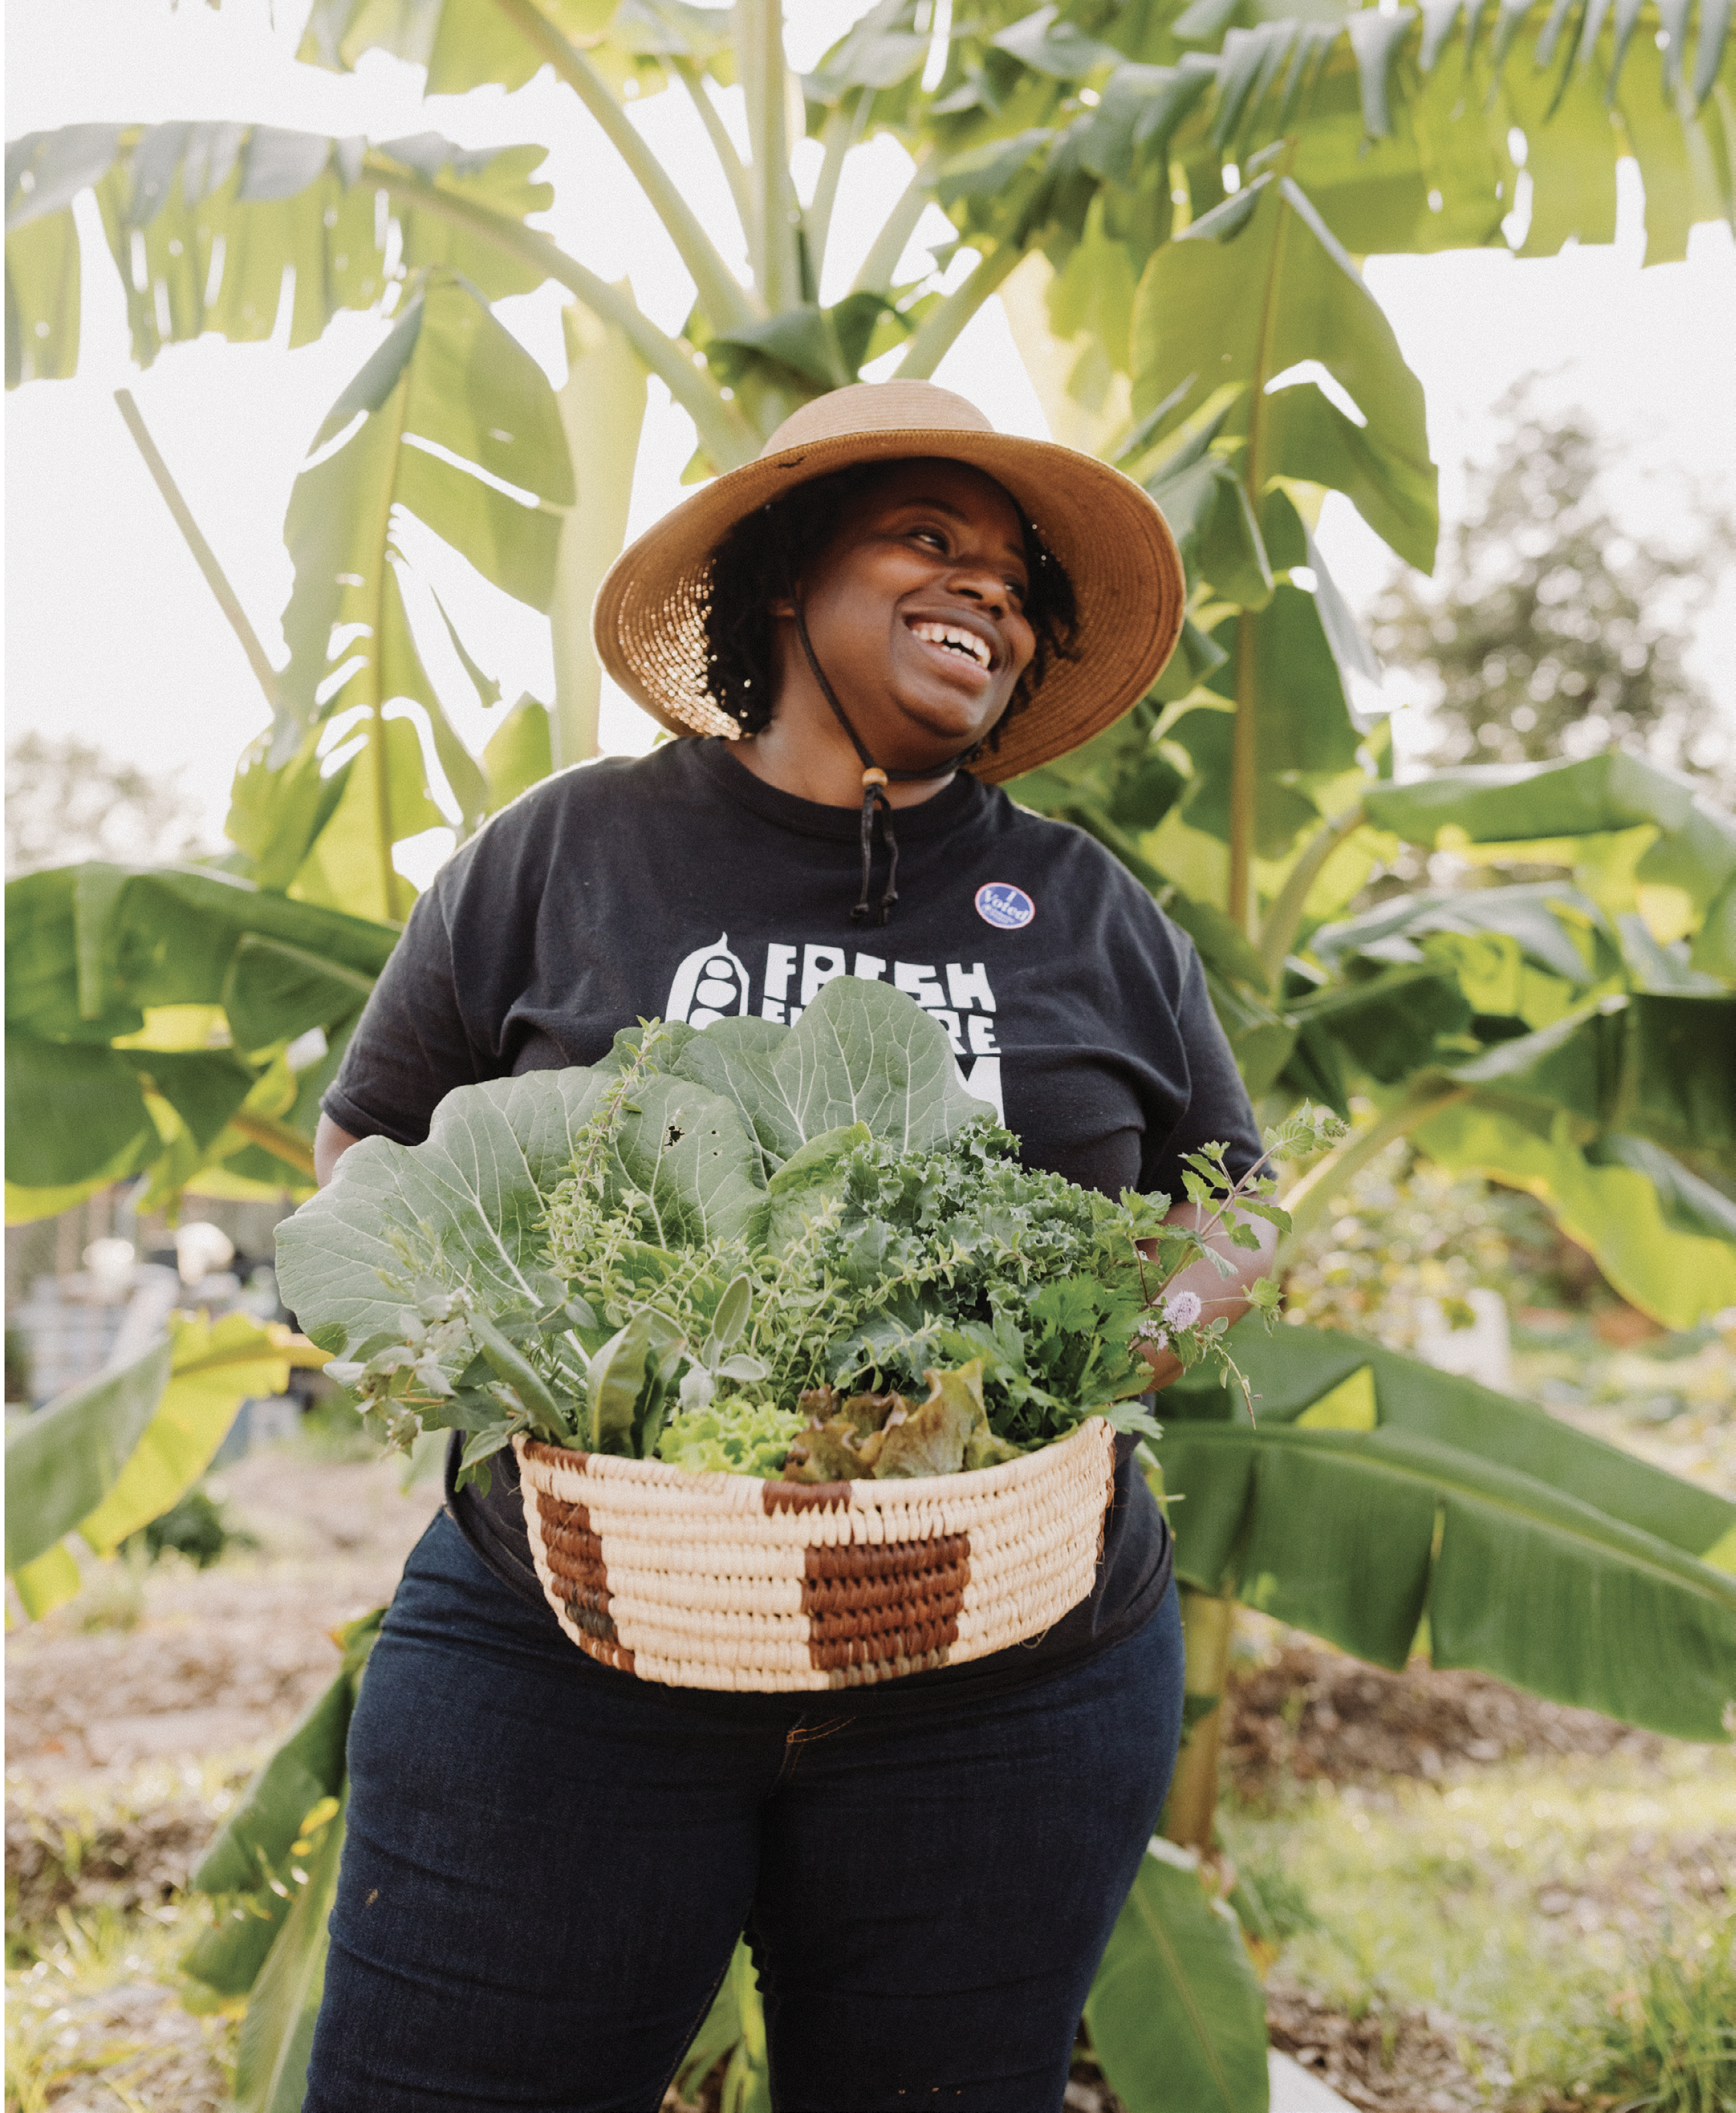 Farmer and community visionary Germaine Jenkins revels in a harvest of healthy greens from her North Charleston nonprofit, Fresh Future Farm.